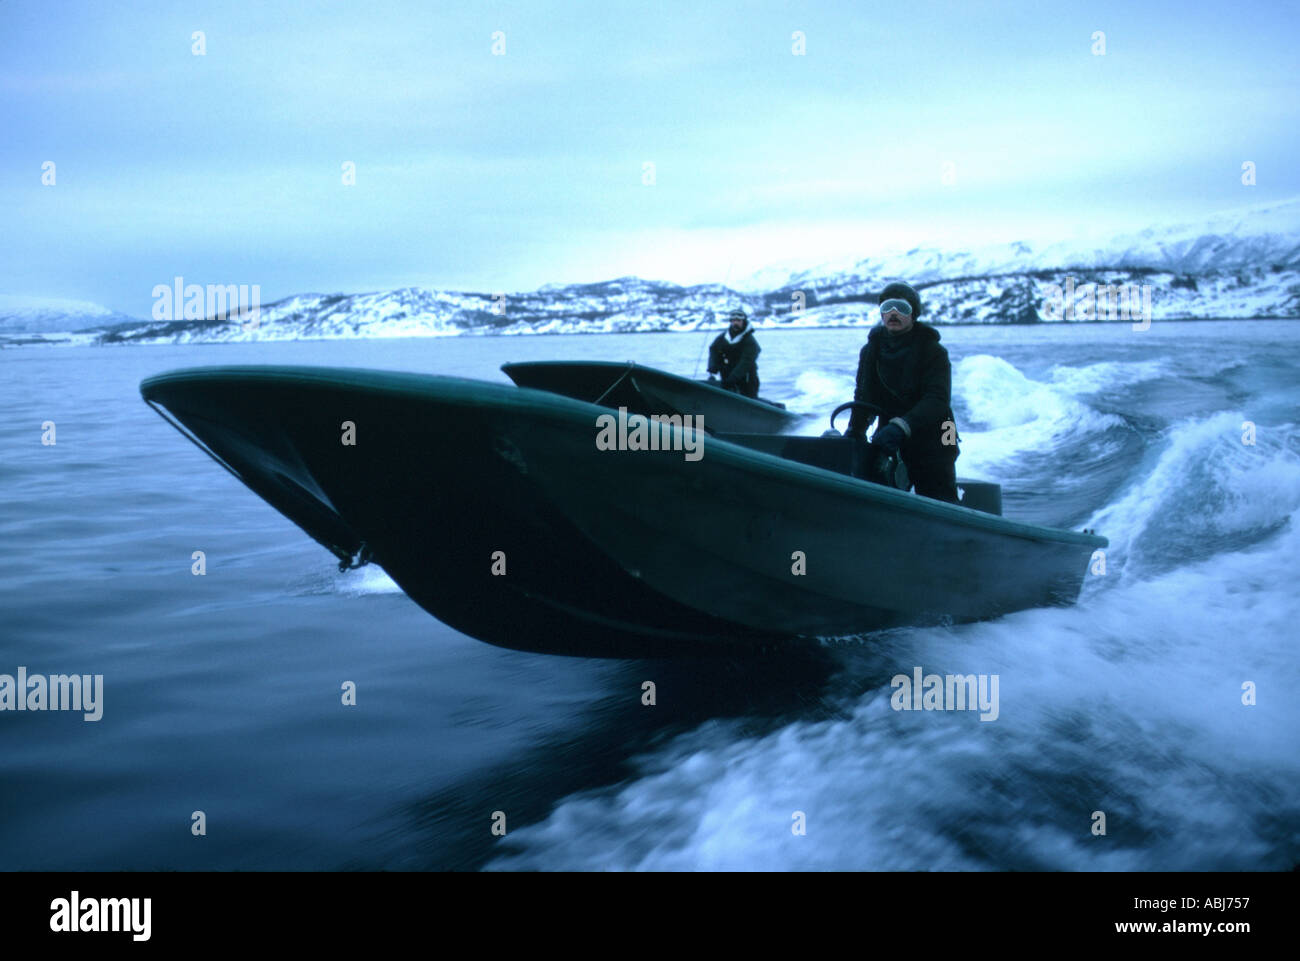 Mountain and Arctic Warfare with rigid raider boat on fjord - Stock Image